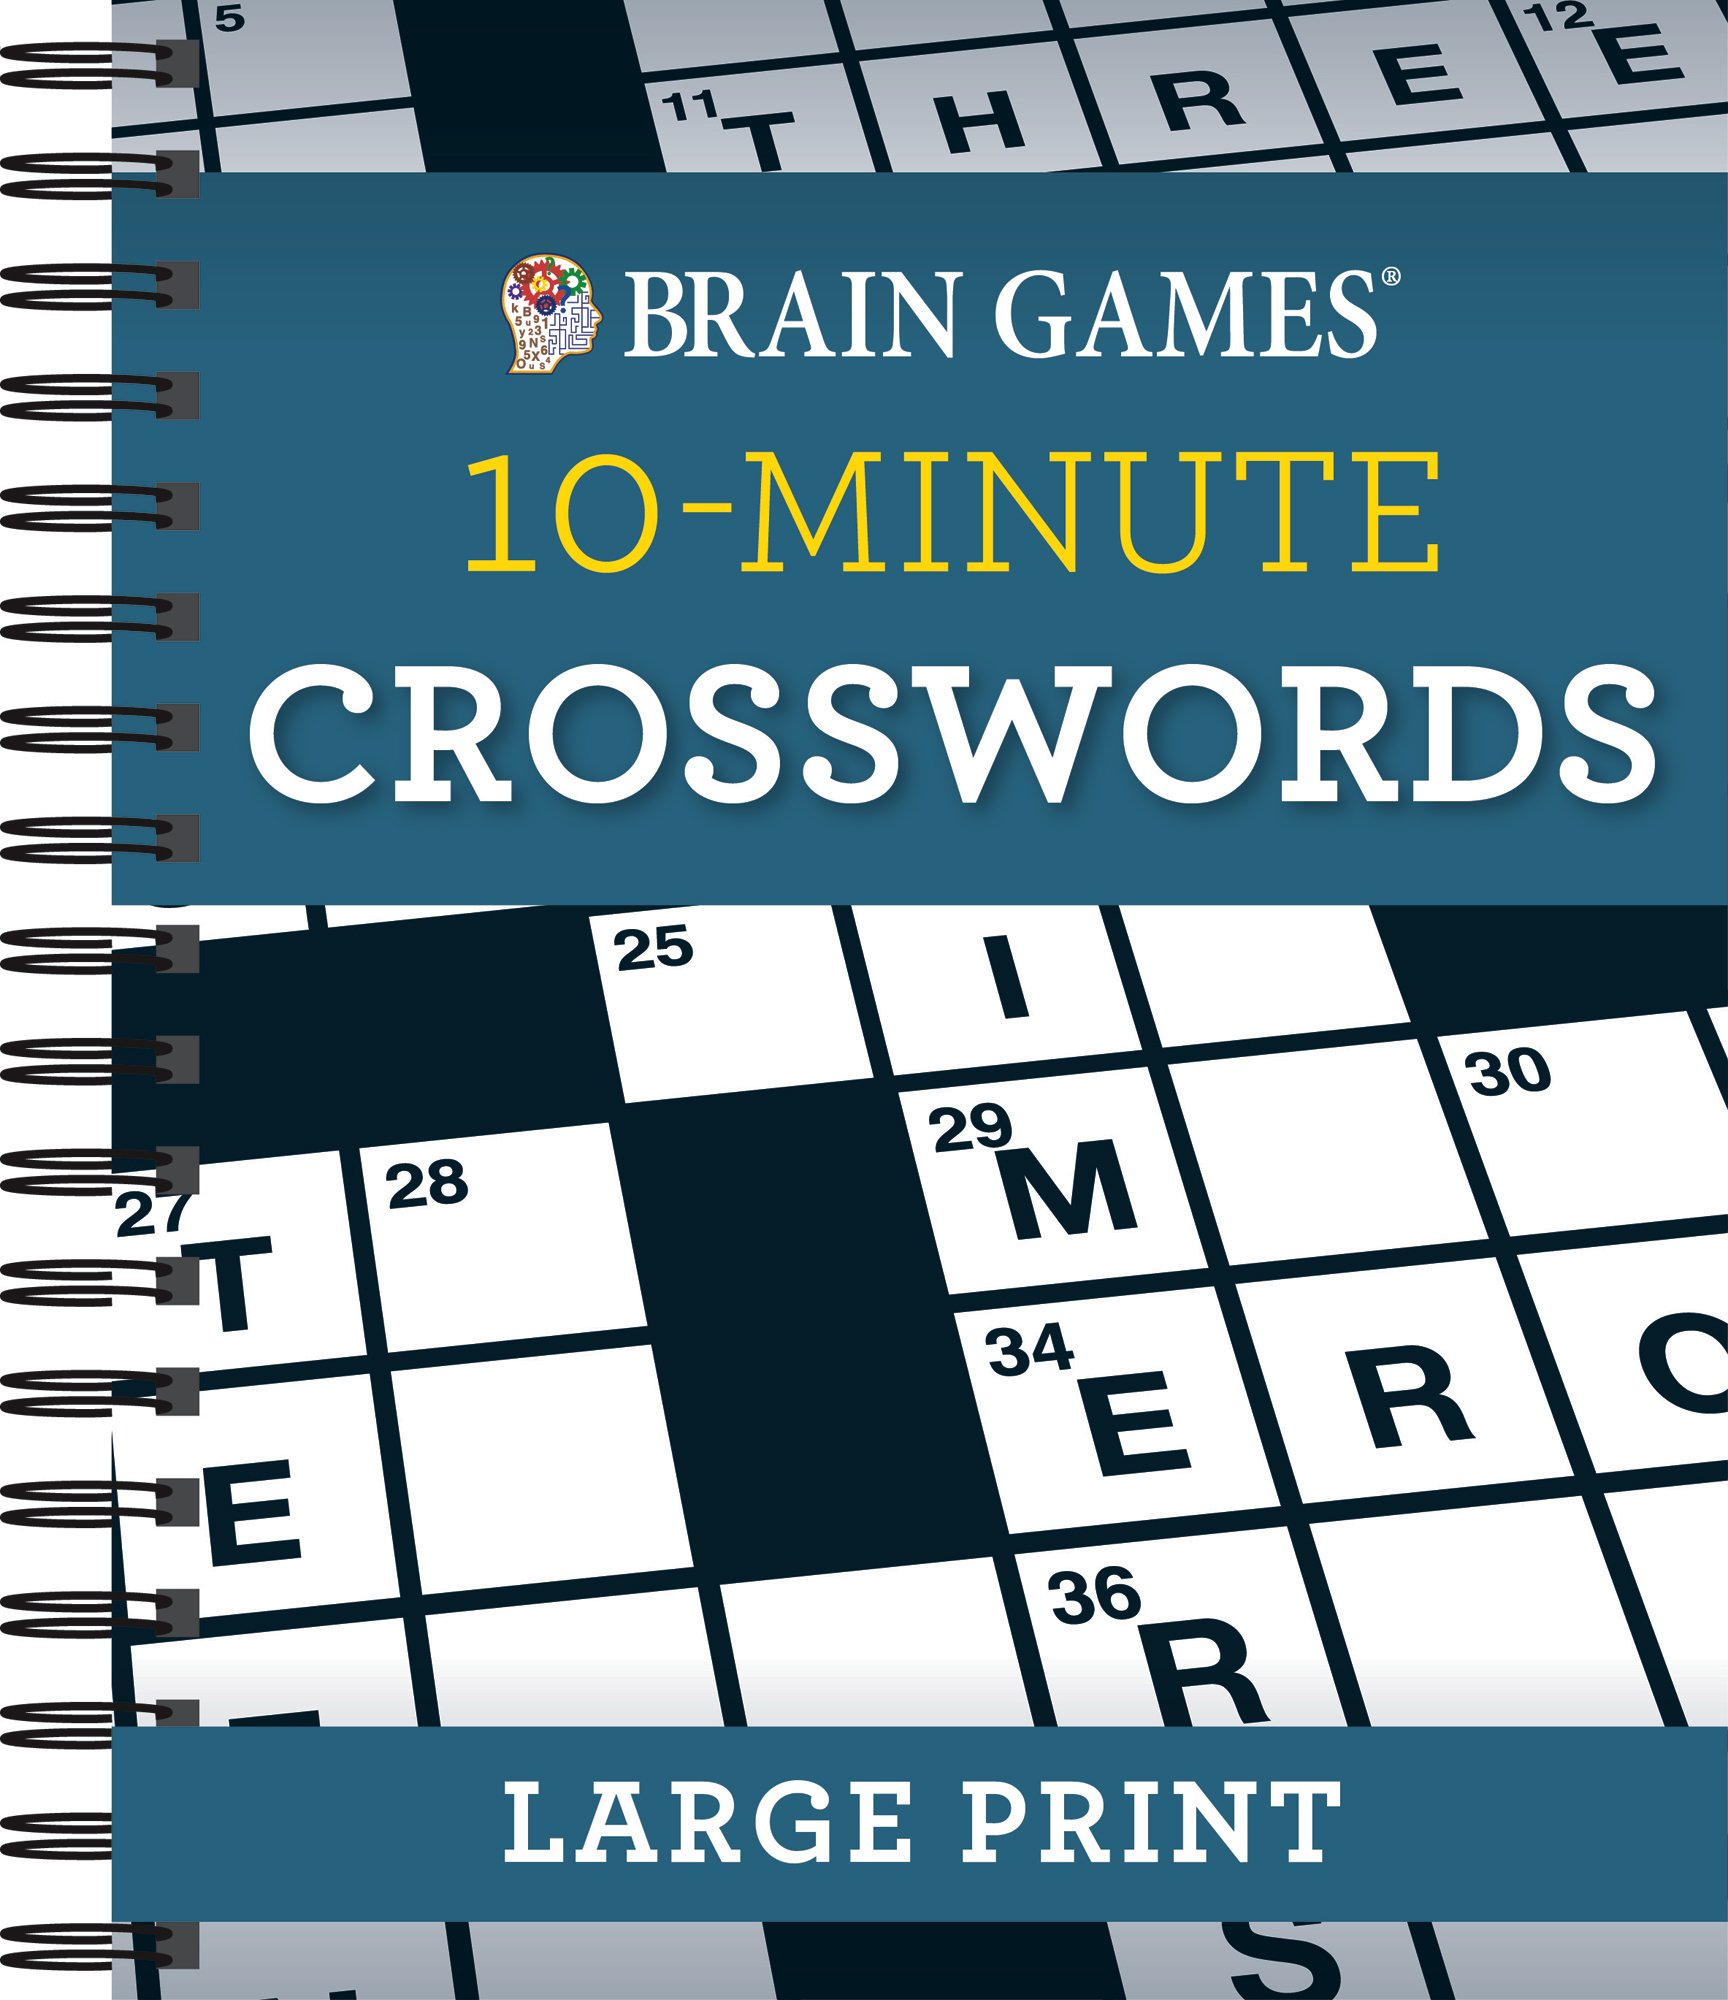 Brain Games® 10-Minute Crossword Puzzles - Large Print PDF